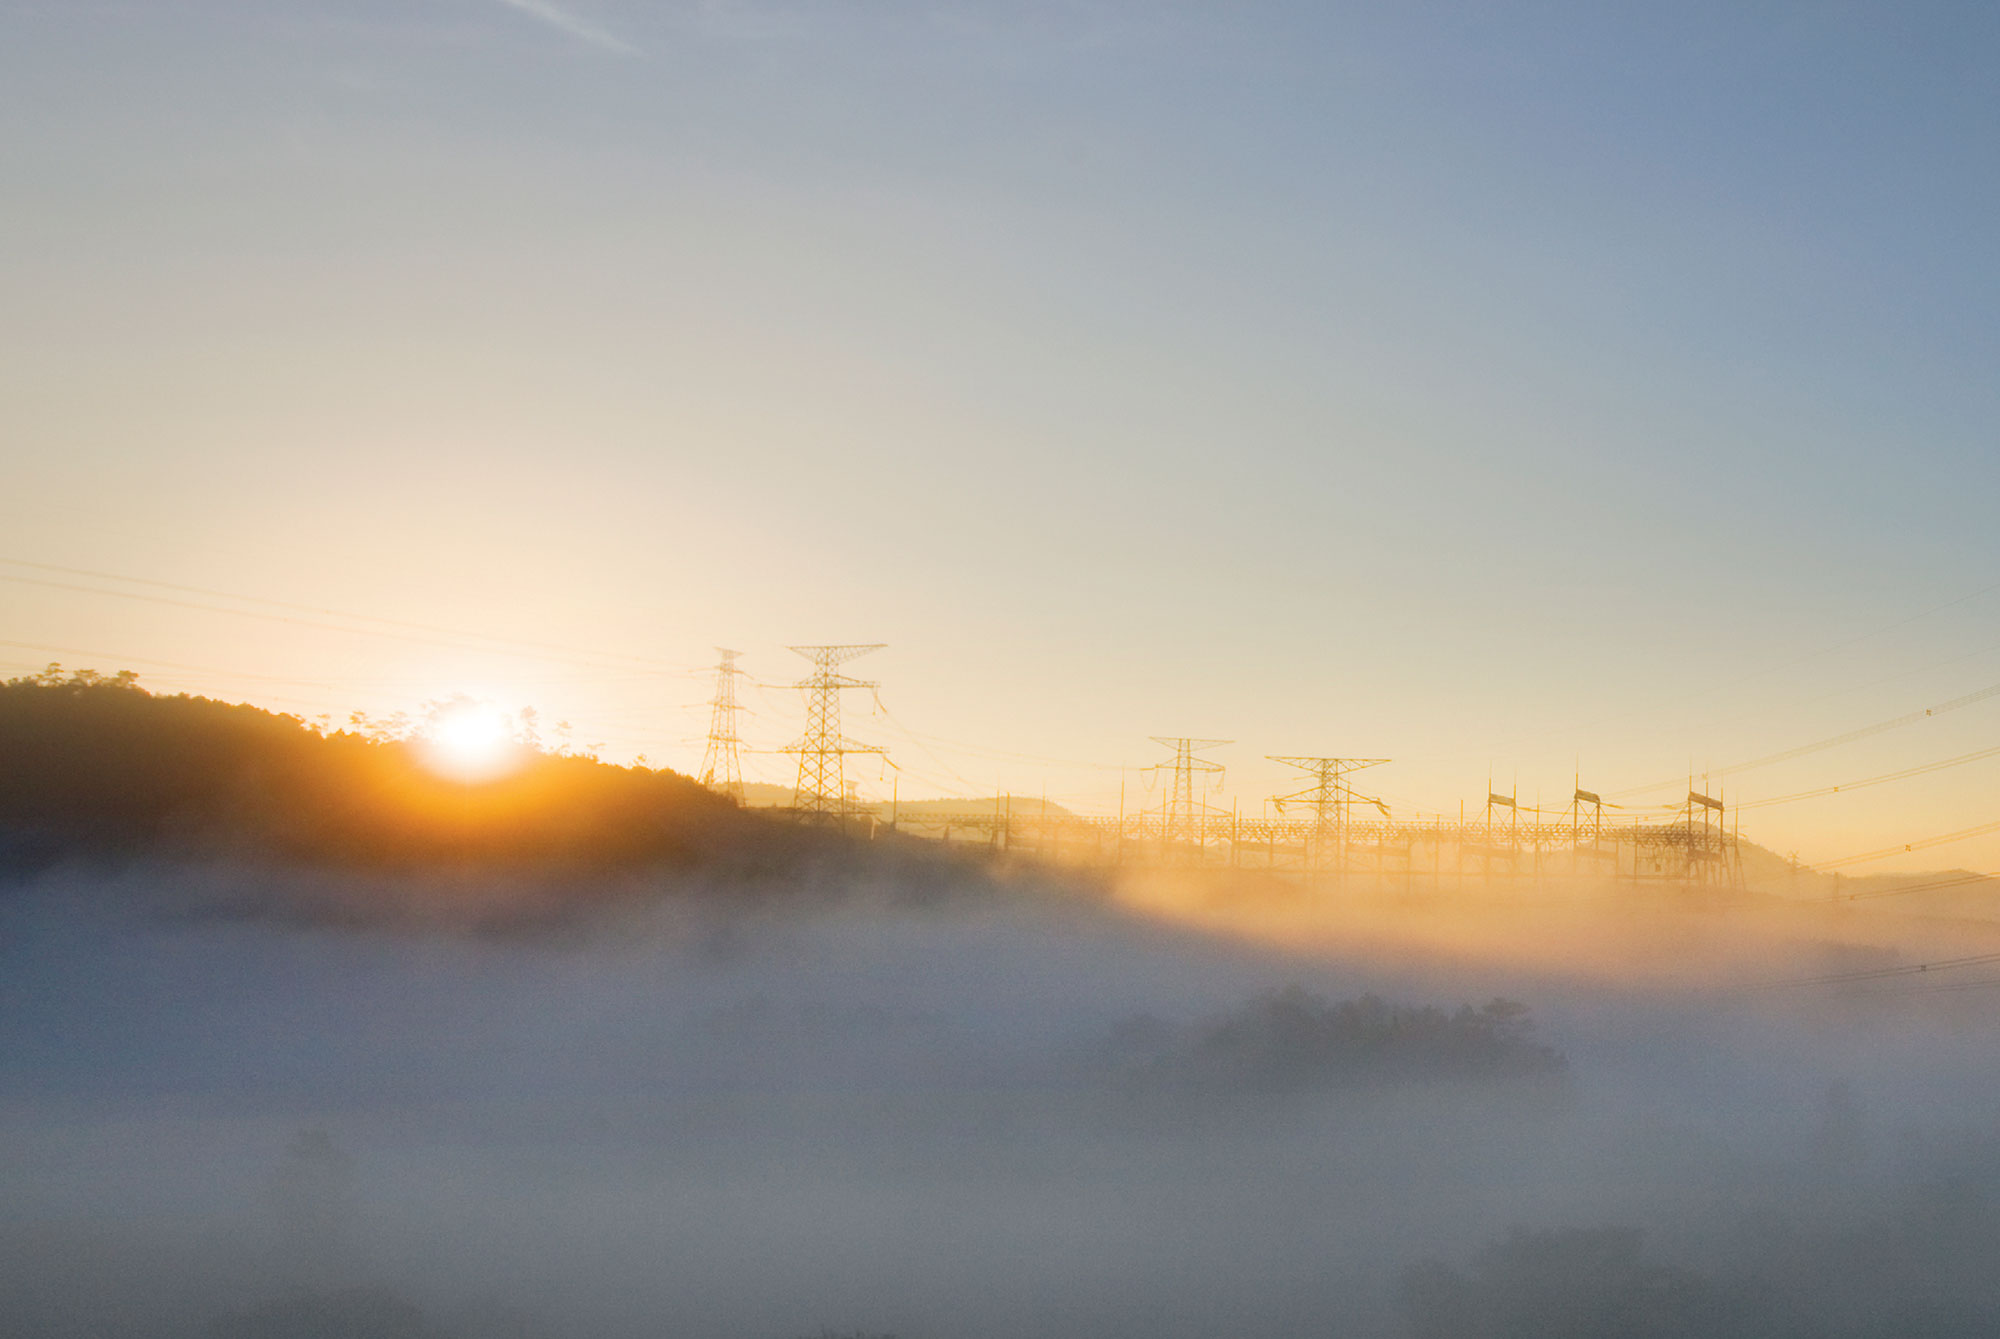 The Future Of The Electric Grid Mit Energy Initiative